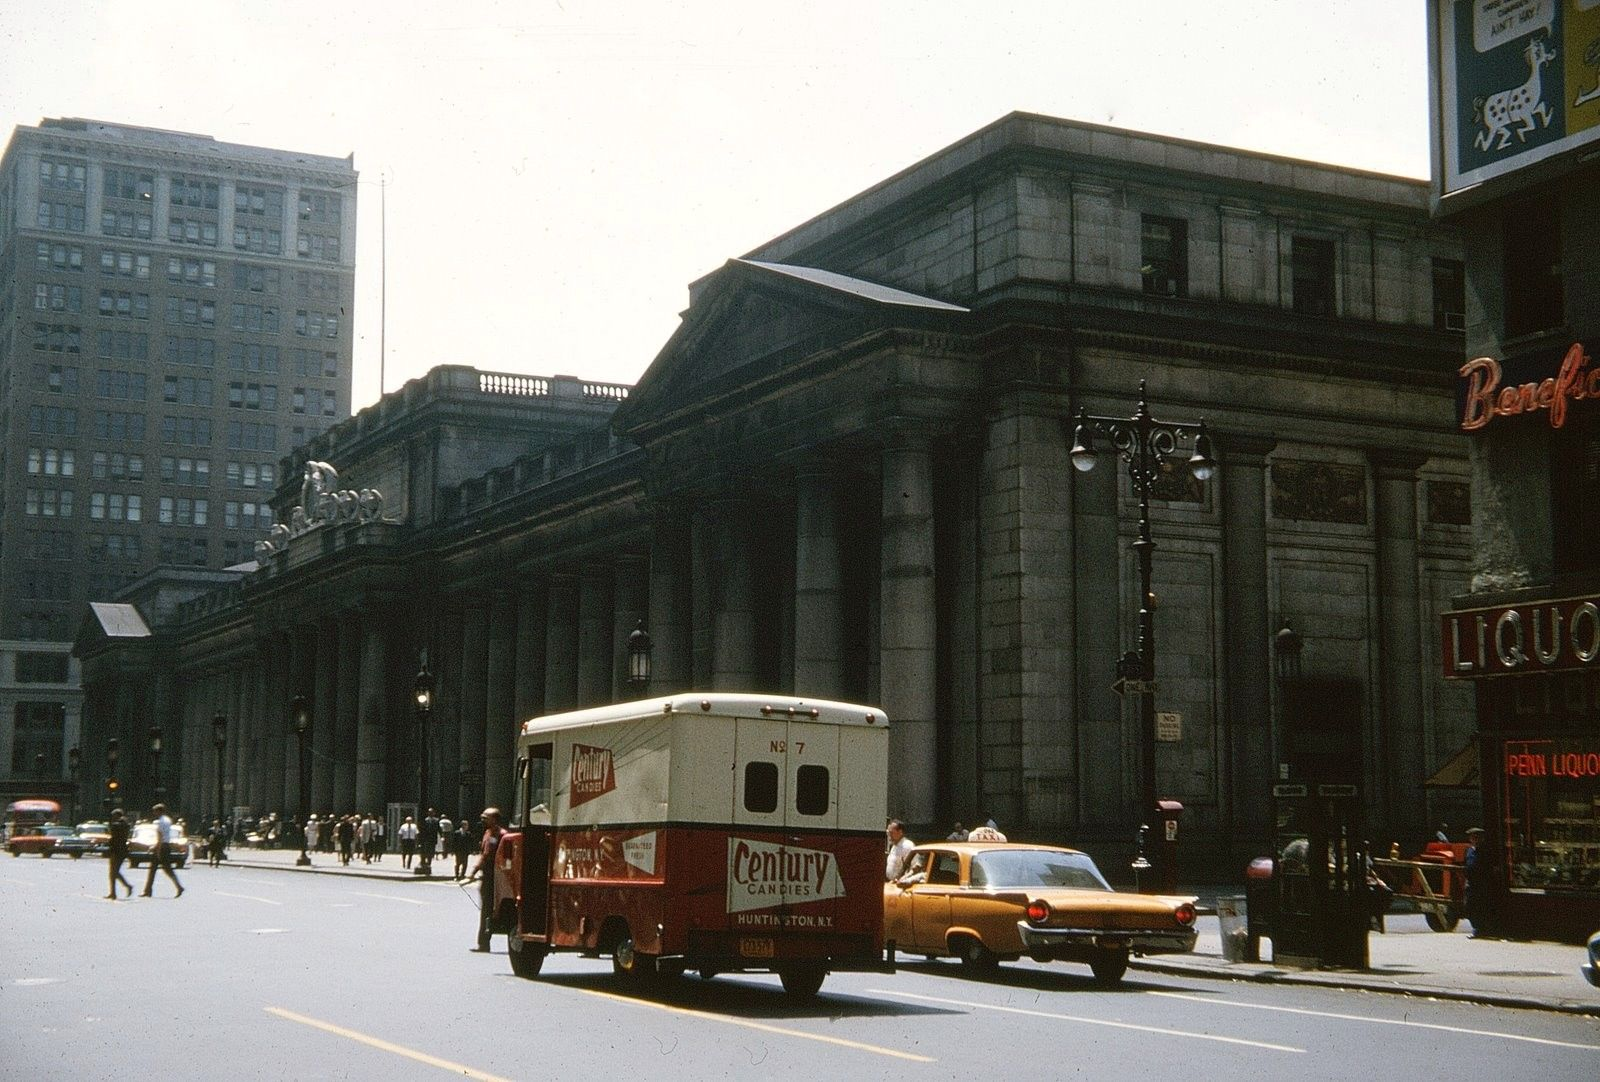 Century Candy Delivery Truck And Pennsylvania Station 1962